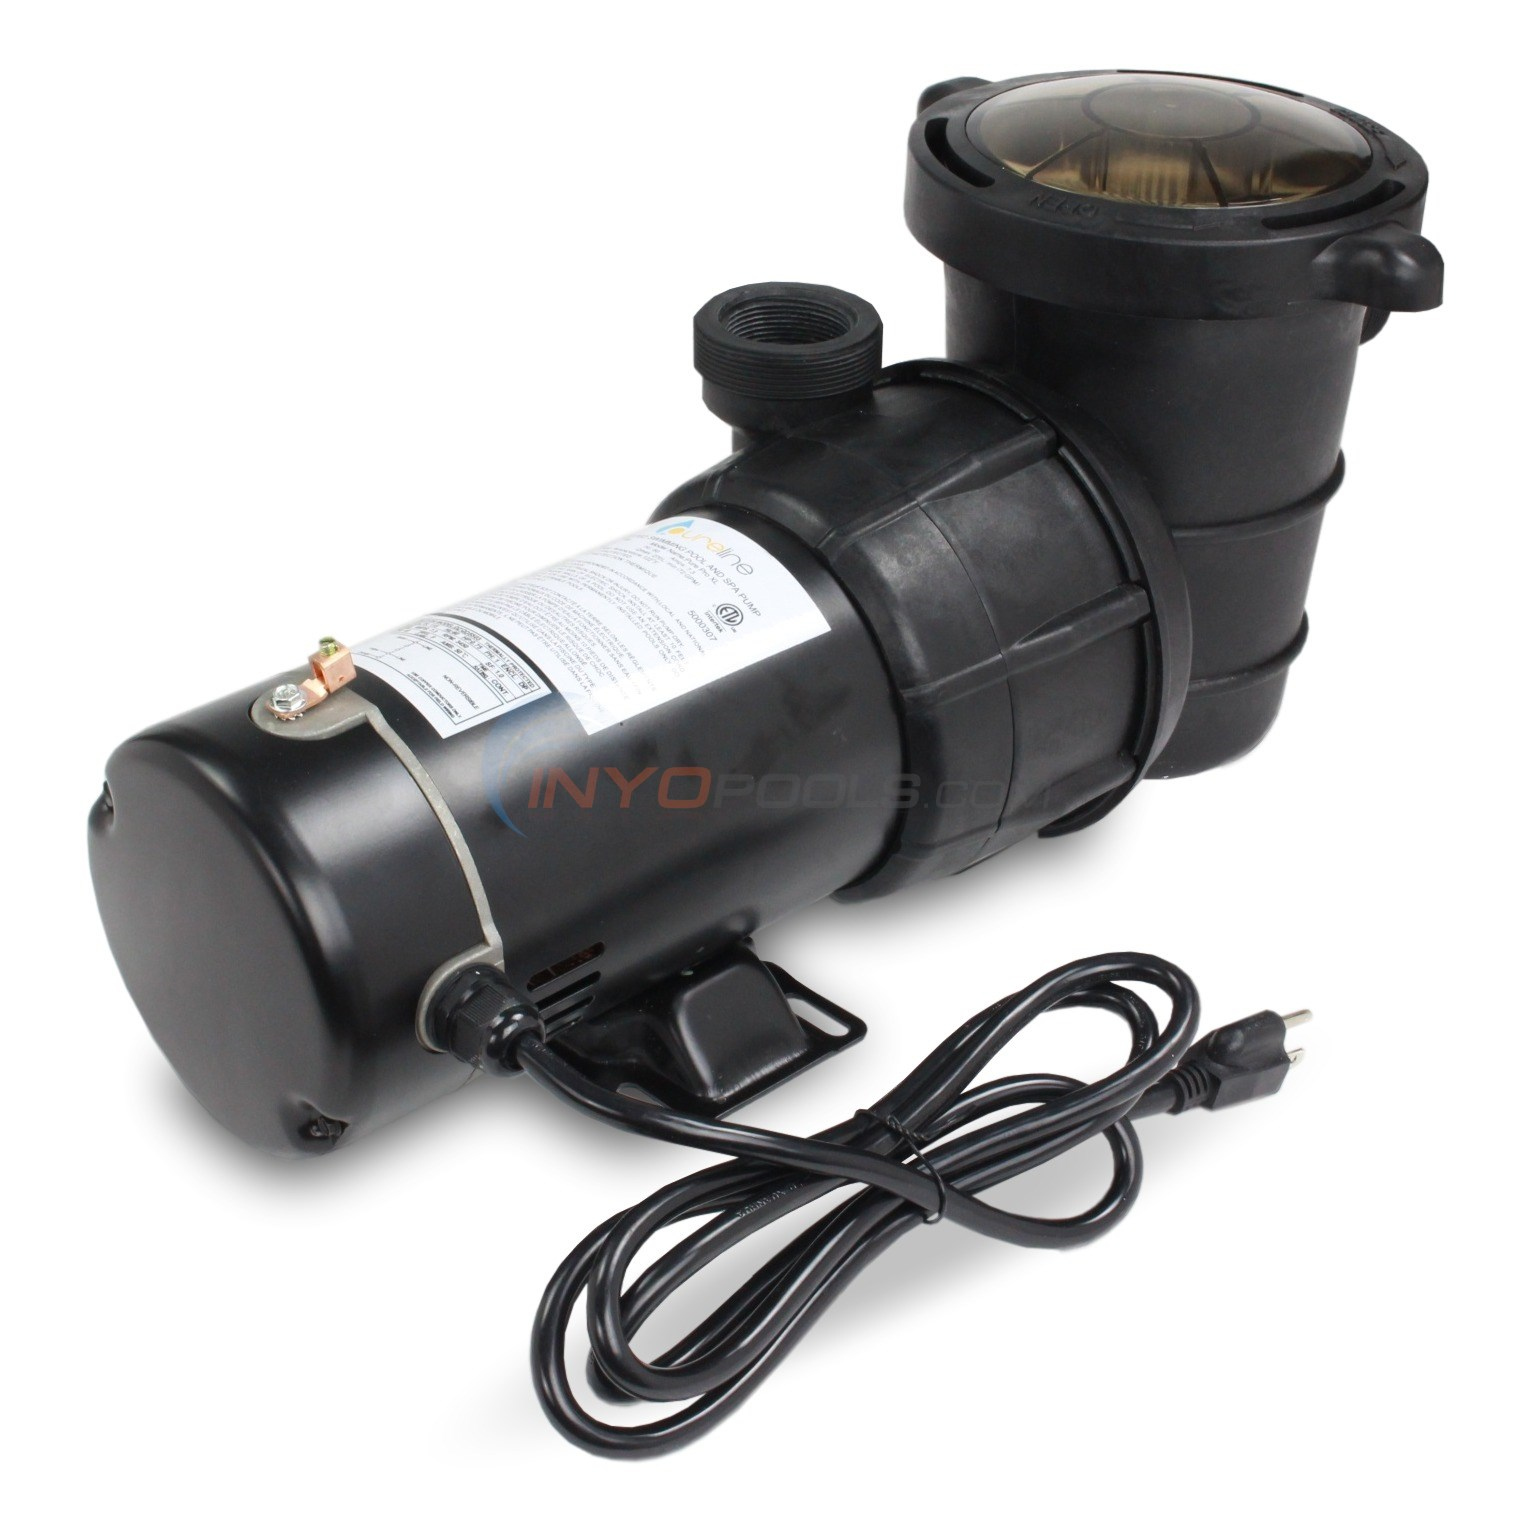 PureLine 1 HP Above Ground Pool Pump - NE6170B